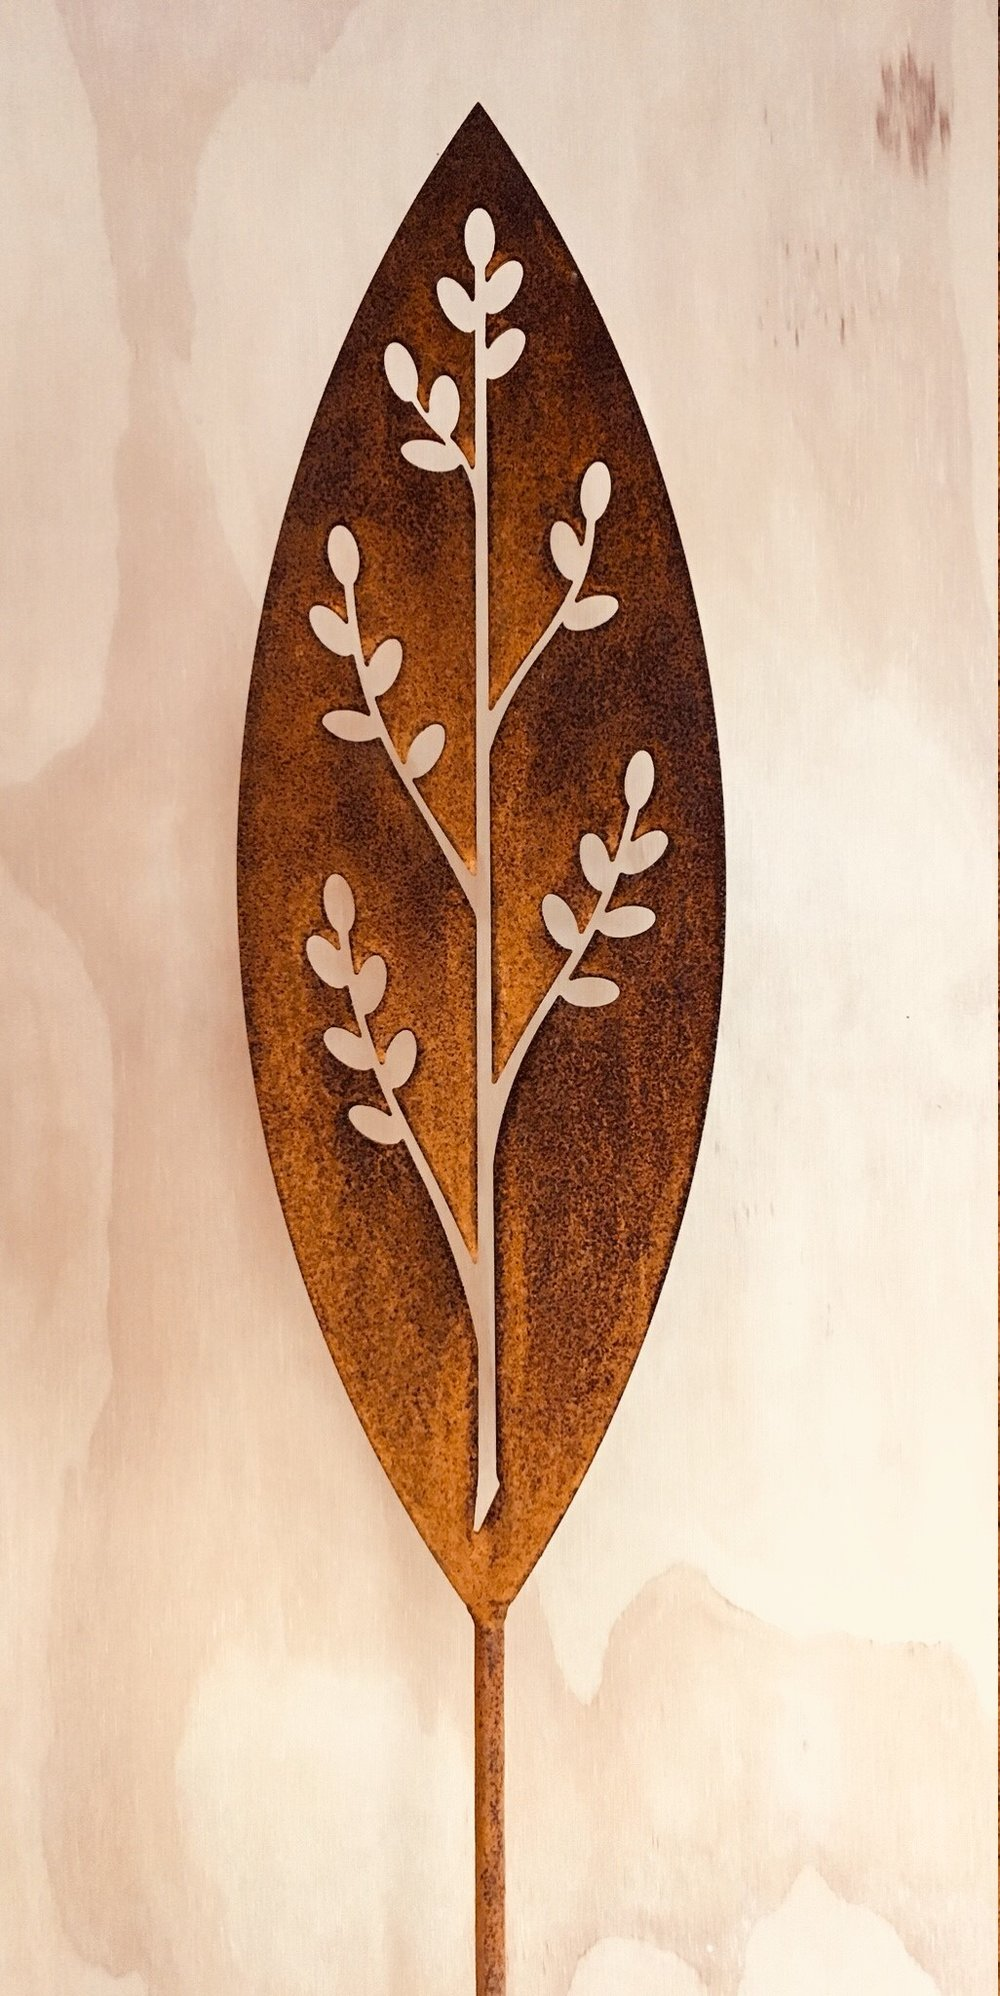 'A Rusty Affair' Corten Korokio  Grounded Art NZ ,  1650mm tall (400mm spear head on a 1250mm rod)  $95.00